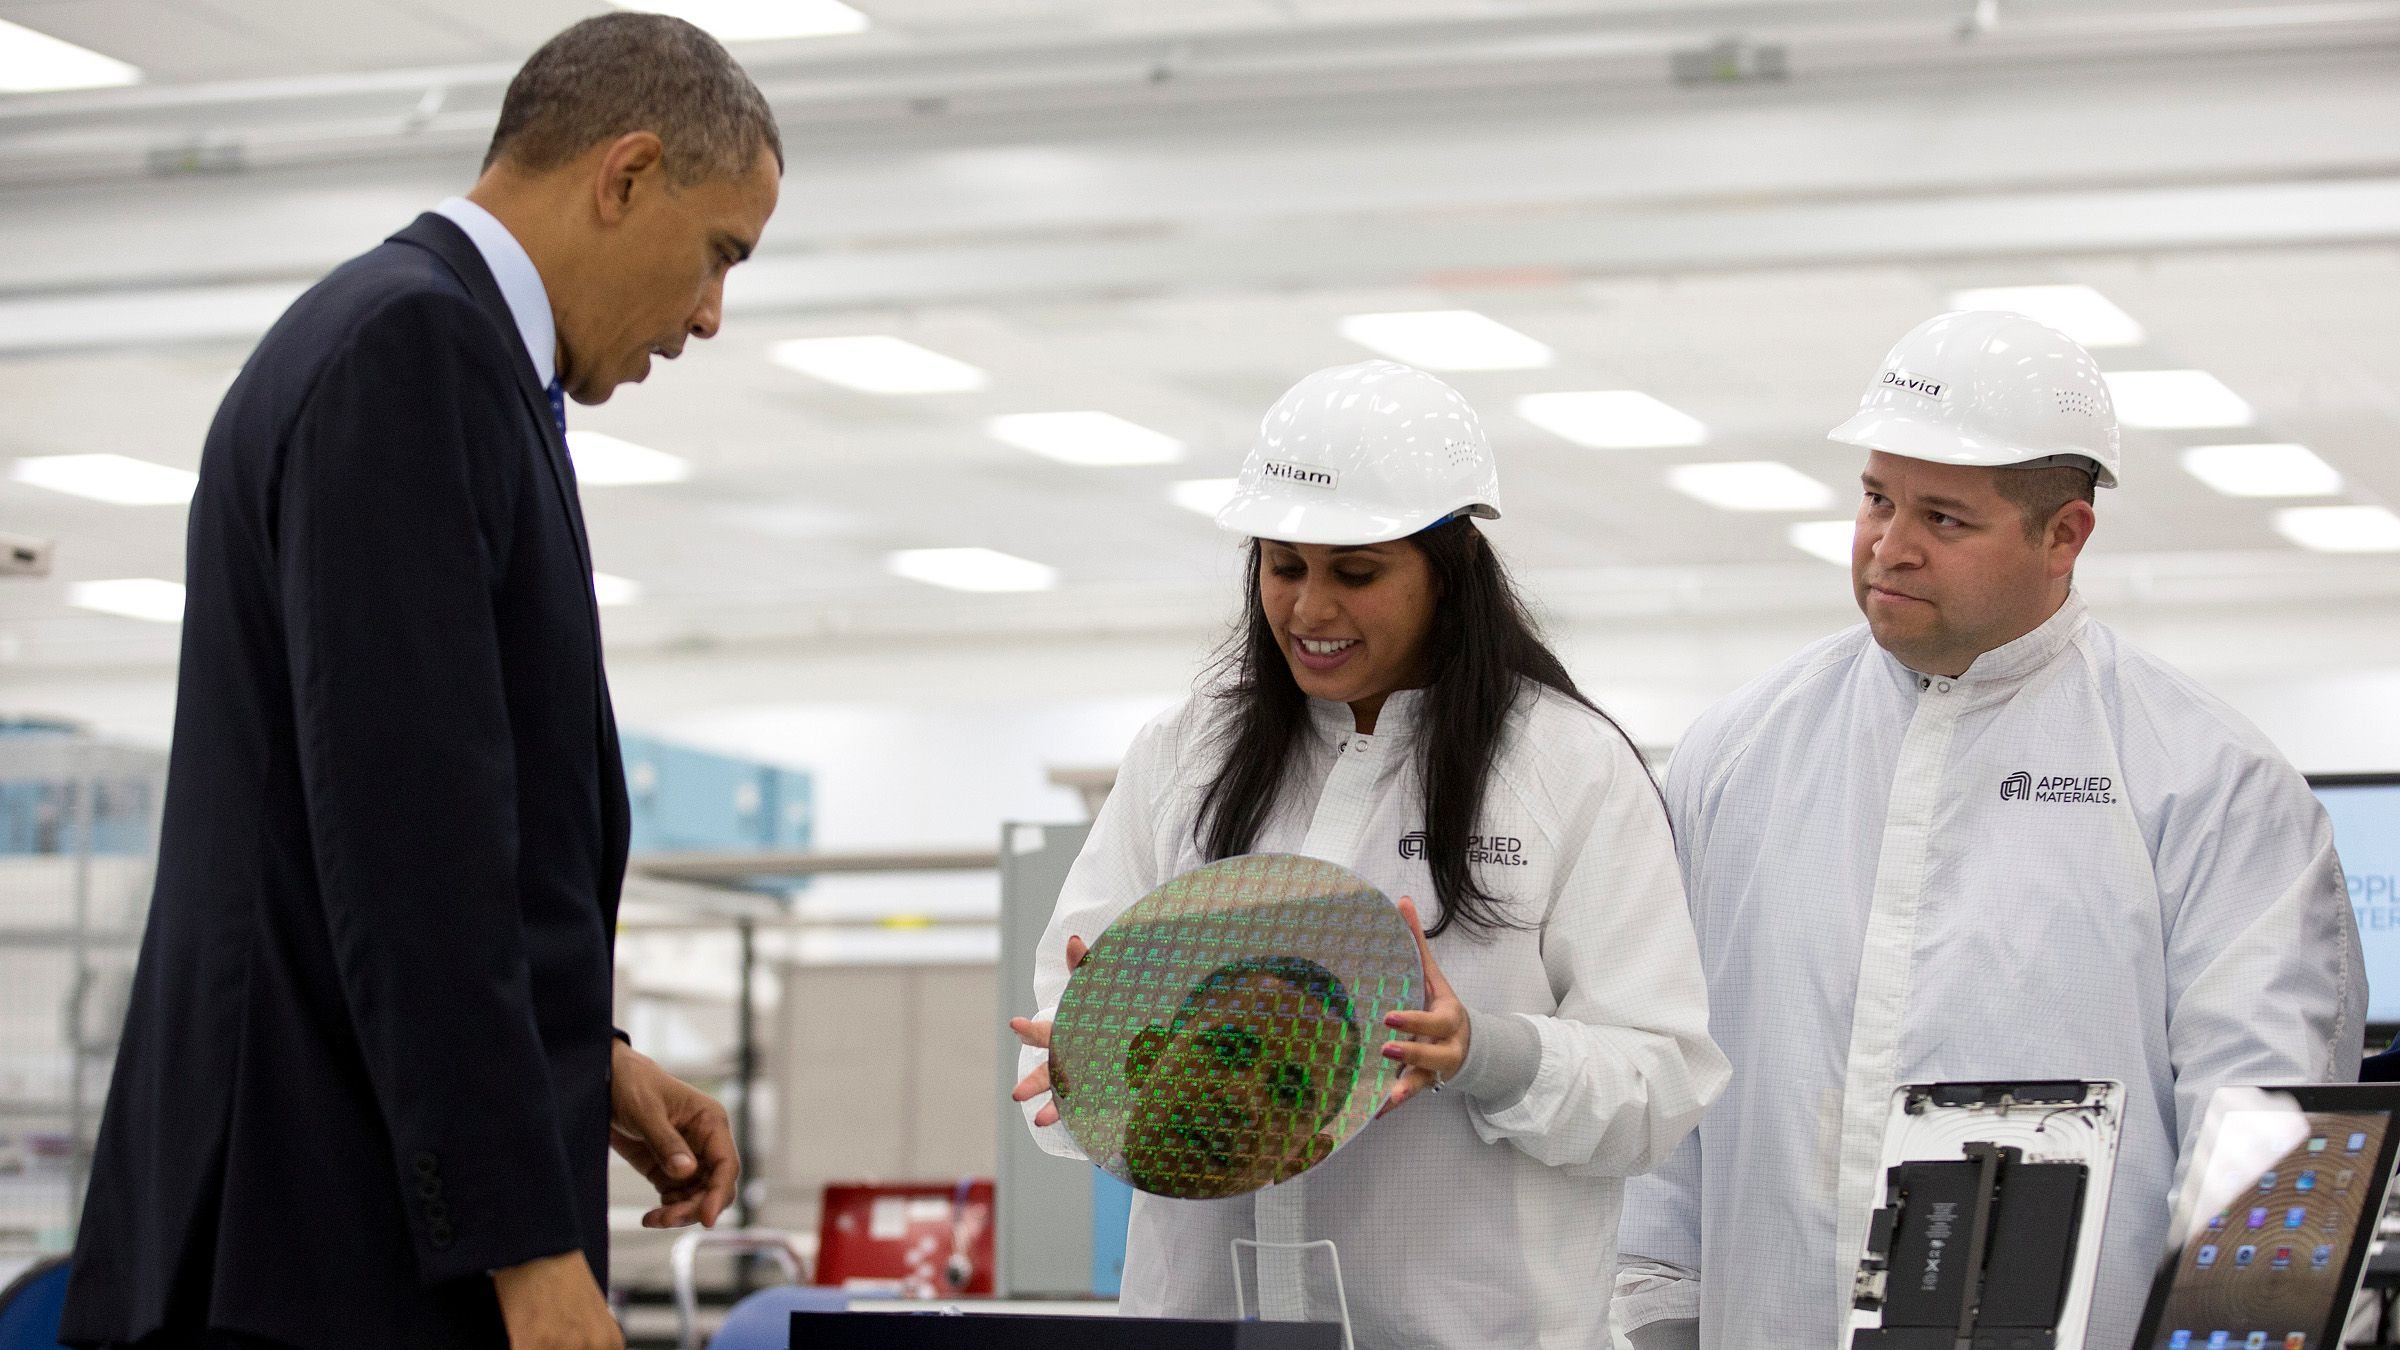 U.S. President Barack Obama is reflected in a silicon wafer during a tour of Applied Materials in Austin, Texas, May 9, 2013.